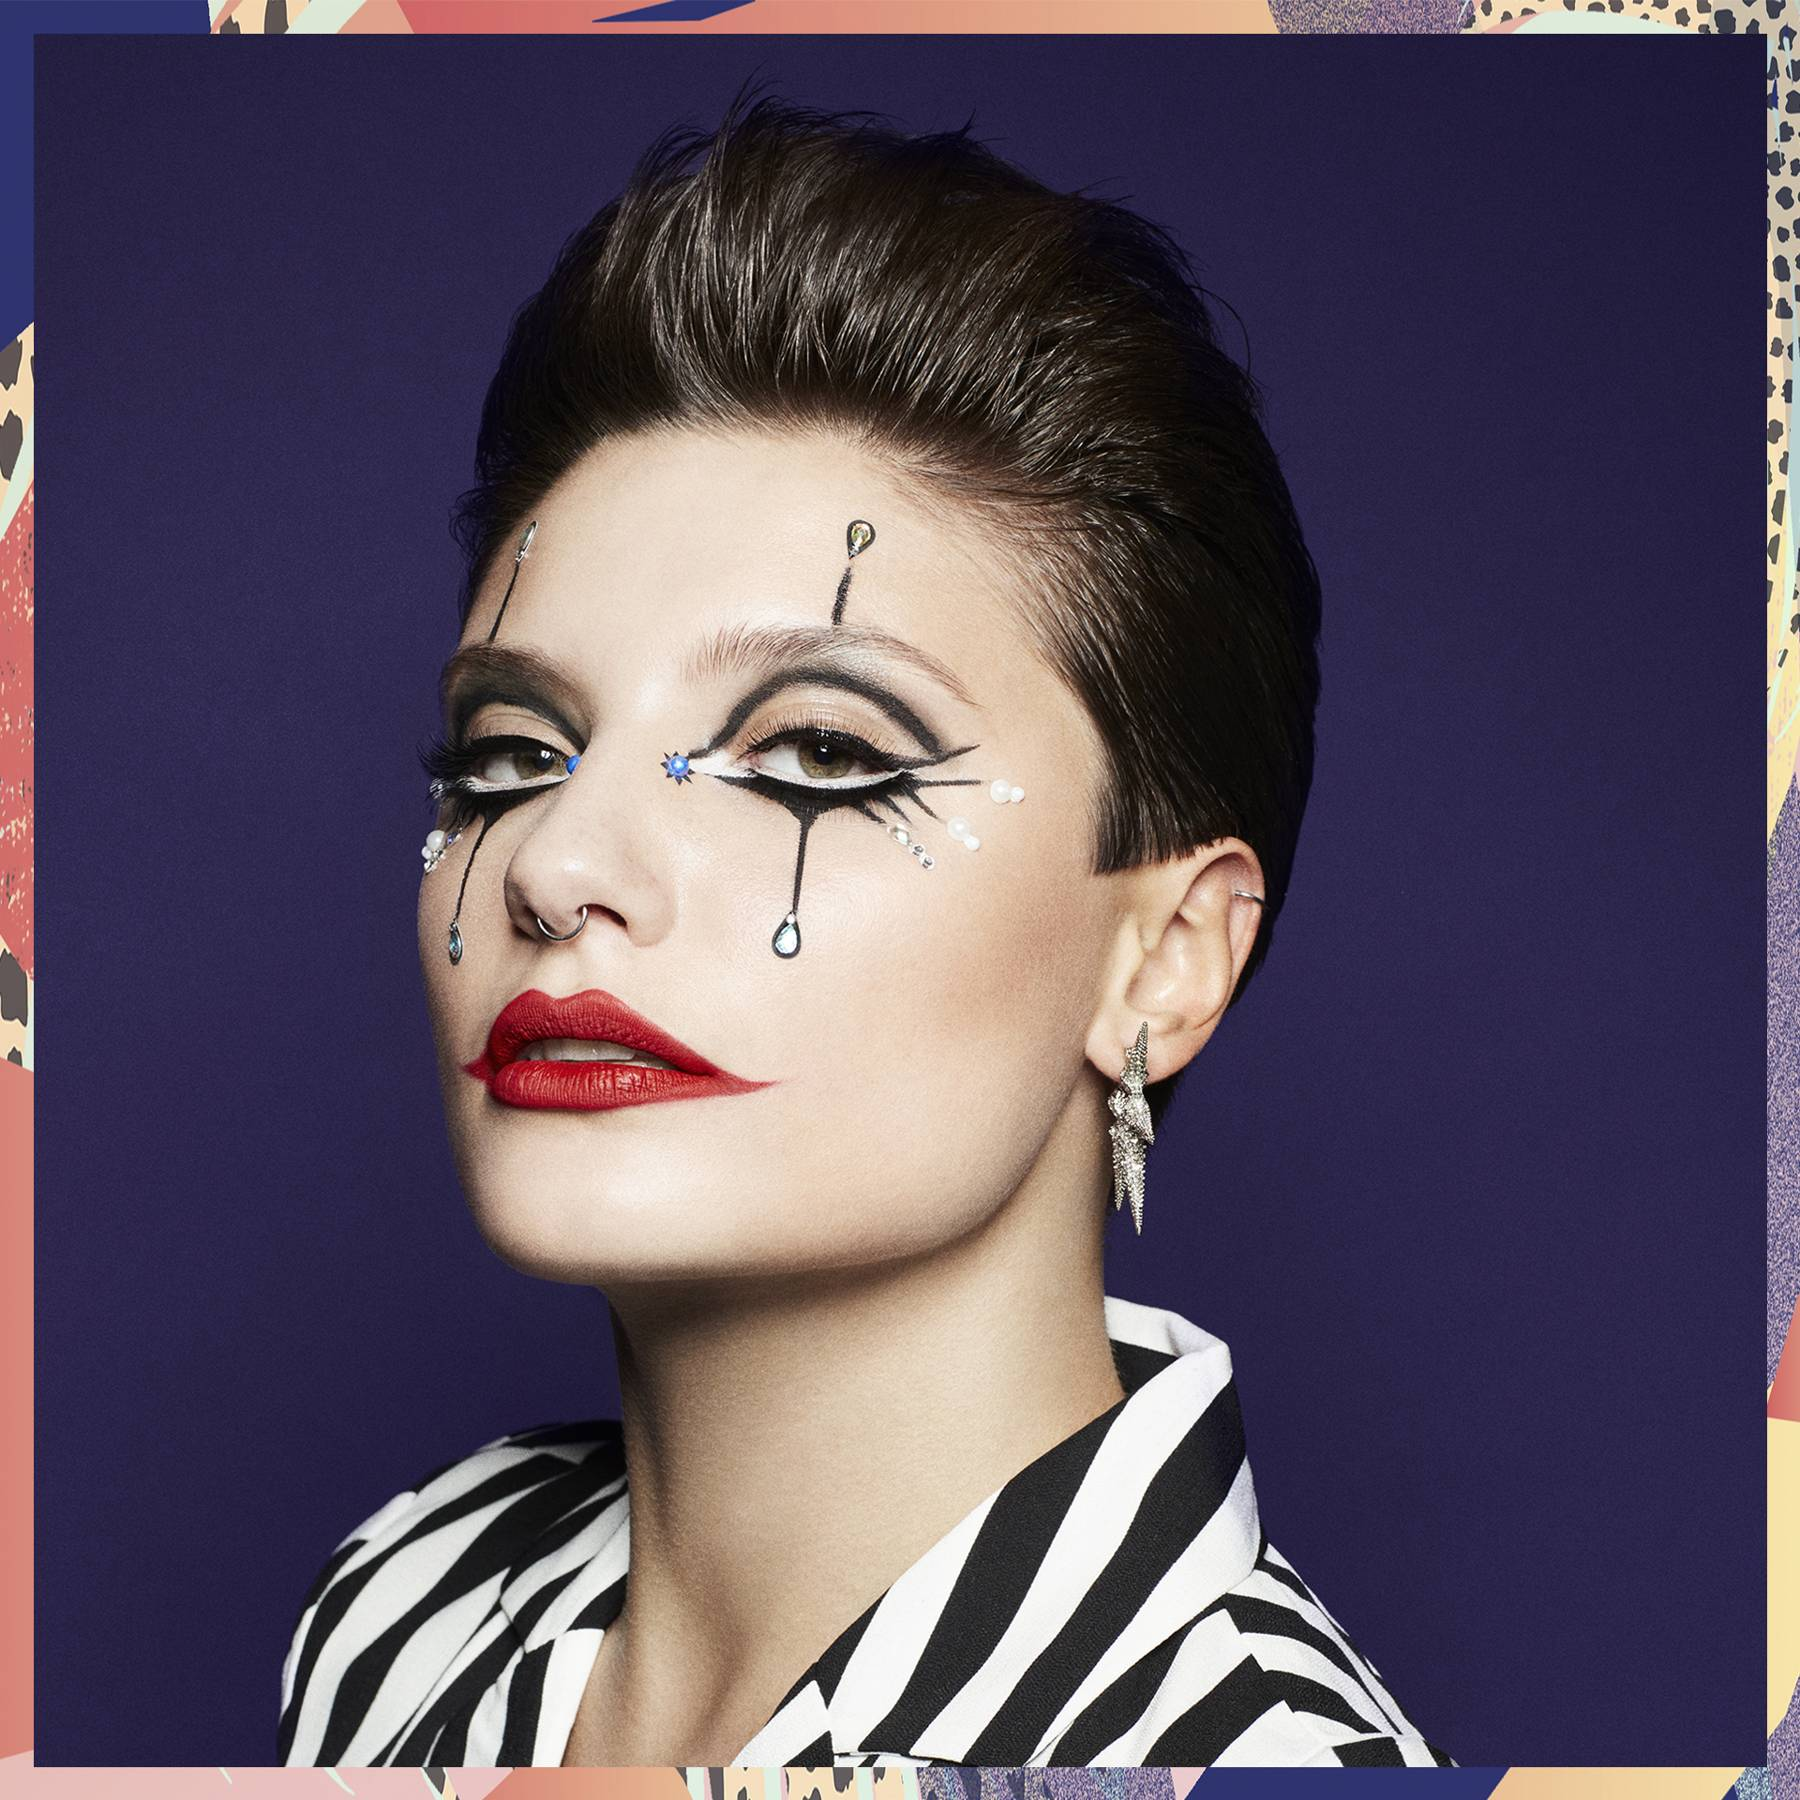 Terrified of clowns? You won't be after you see this chic take on jester-inspired Halloween makeup